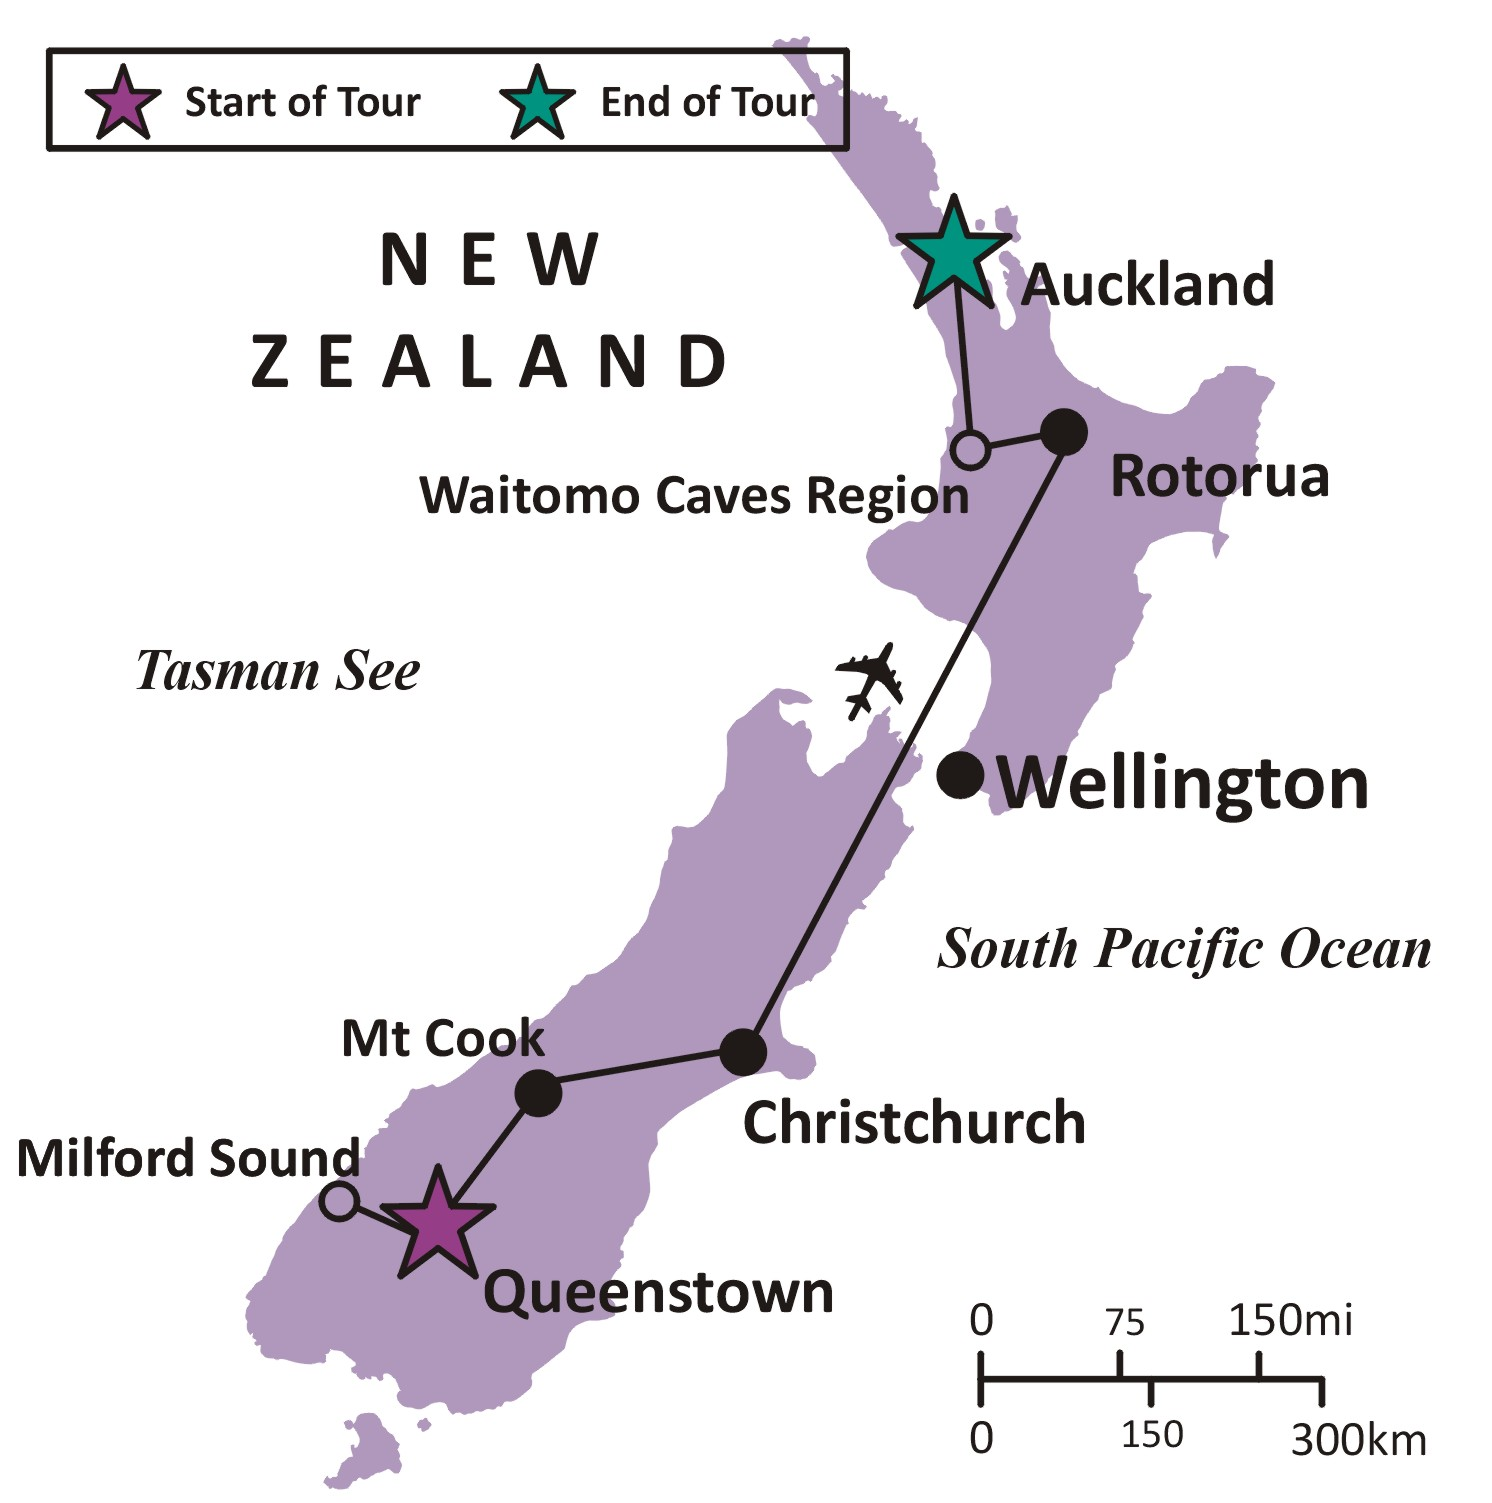 9c7aea4b91d Sights and Soul Travels - New Zealand: South Island and North Island ...